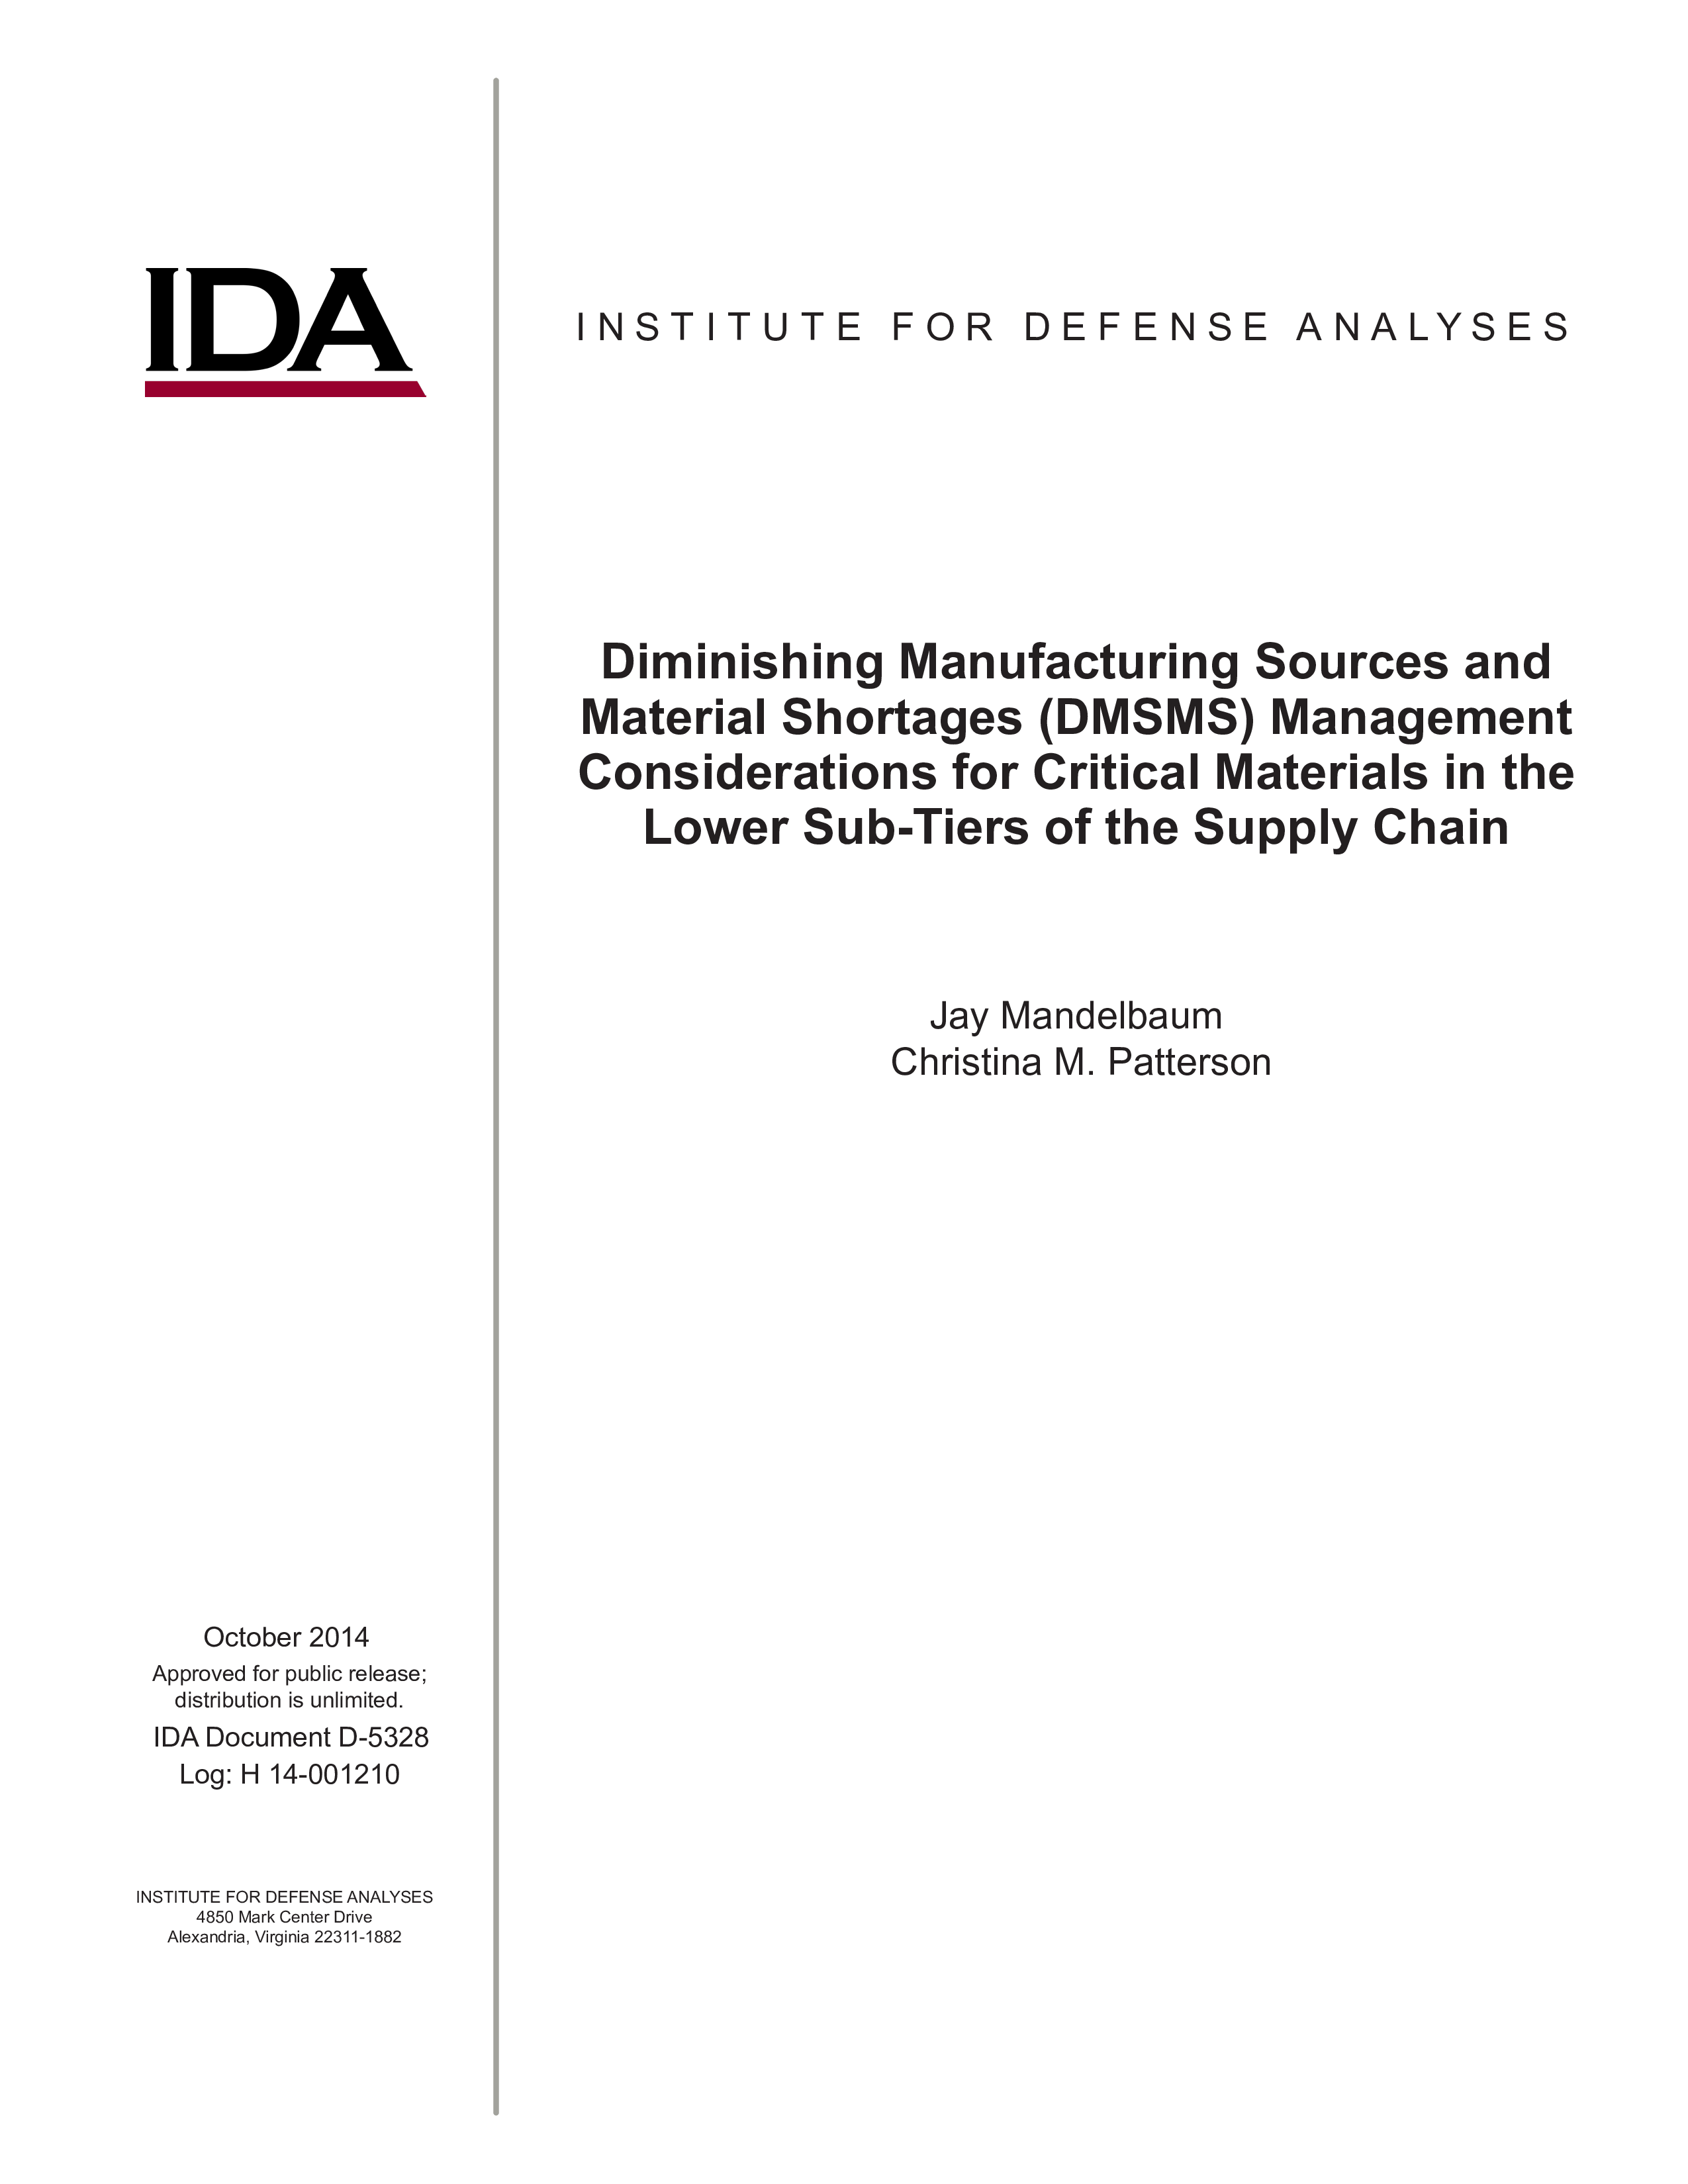 Diminishing Manufacturing Sources and Material Shortages (DMSMS) Management Considerations for Critical Materials in the Lower Sub-Tiers of the Supply Chain